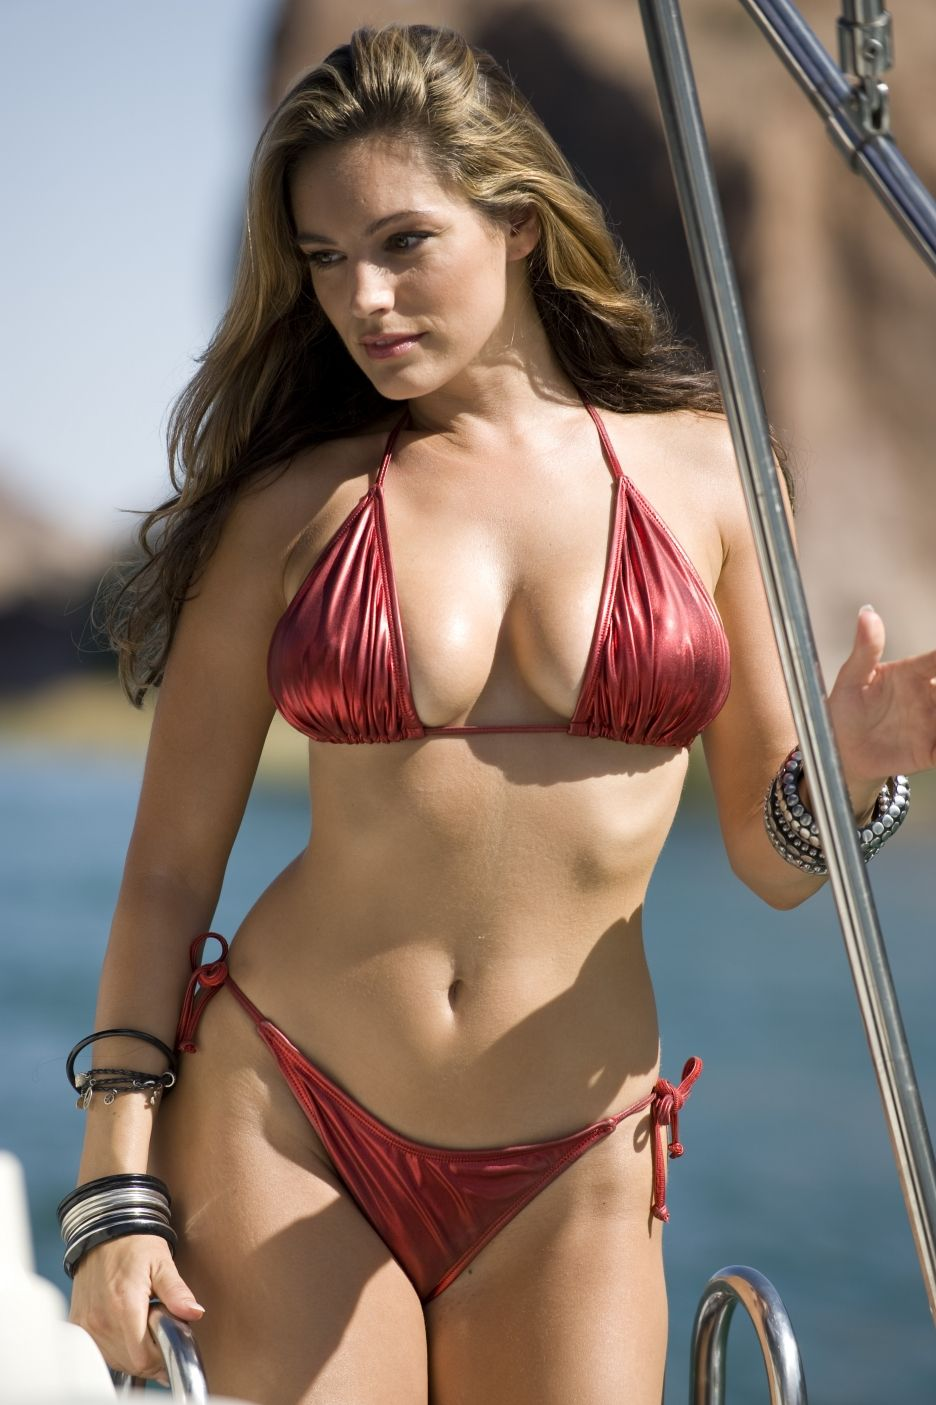 Sexy images of kelly brook